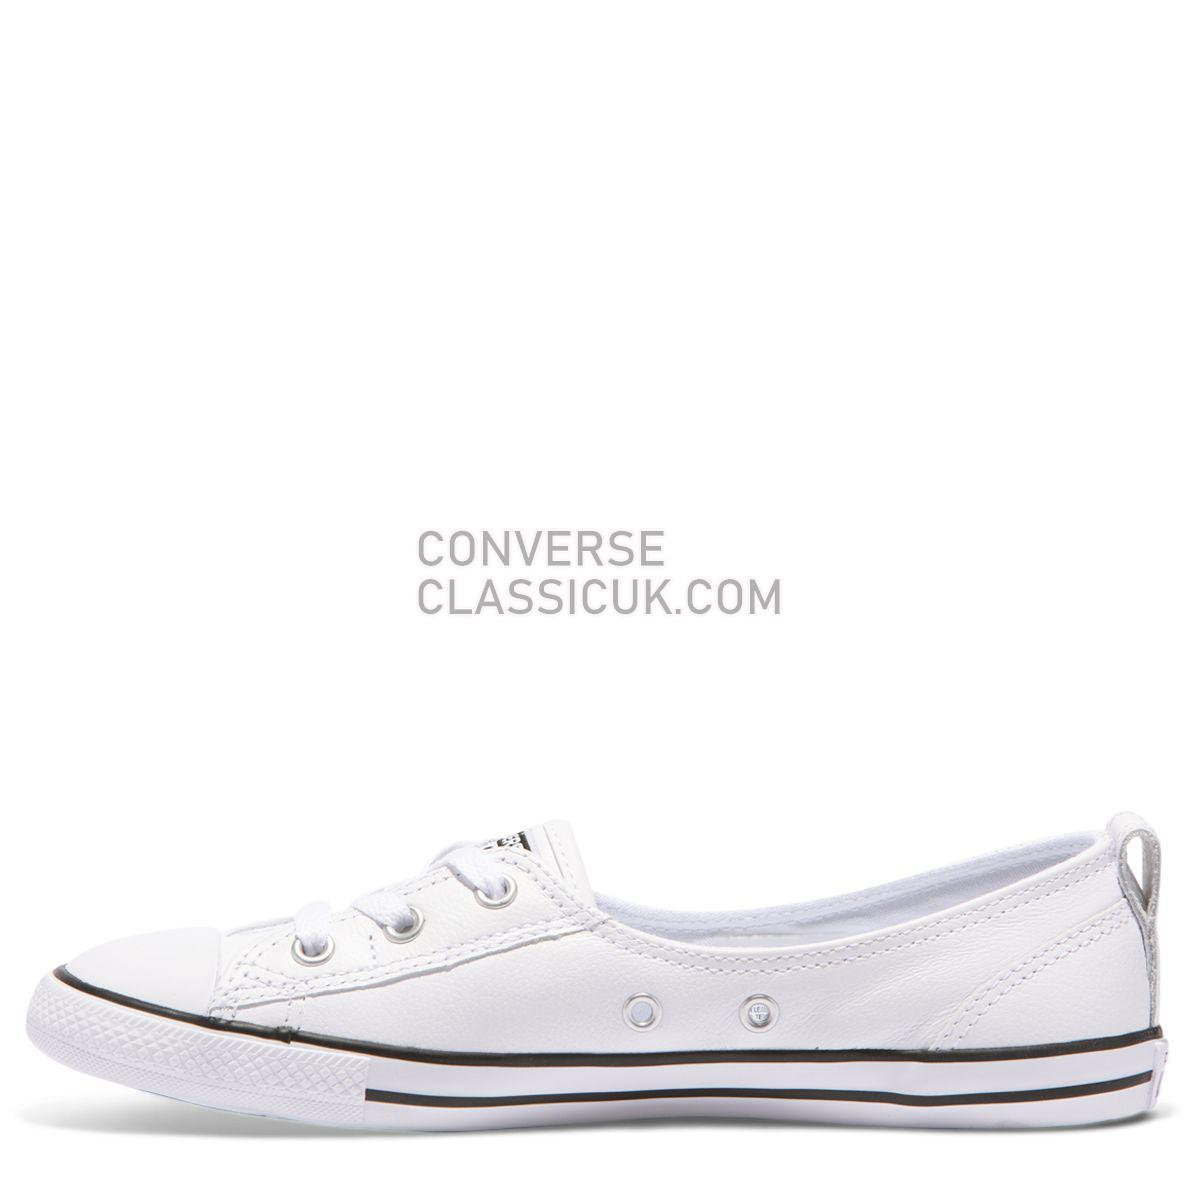 Converse Chuck Taylor All Star Dainty Ballet Slip White Womens 549617 White/Black/White Shoes